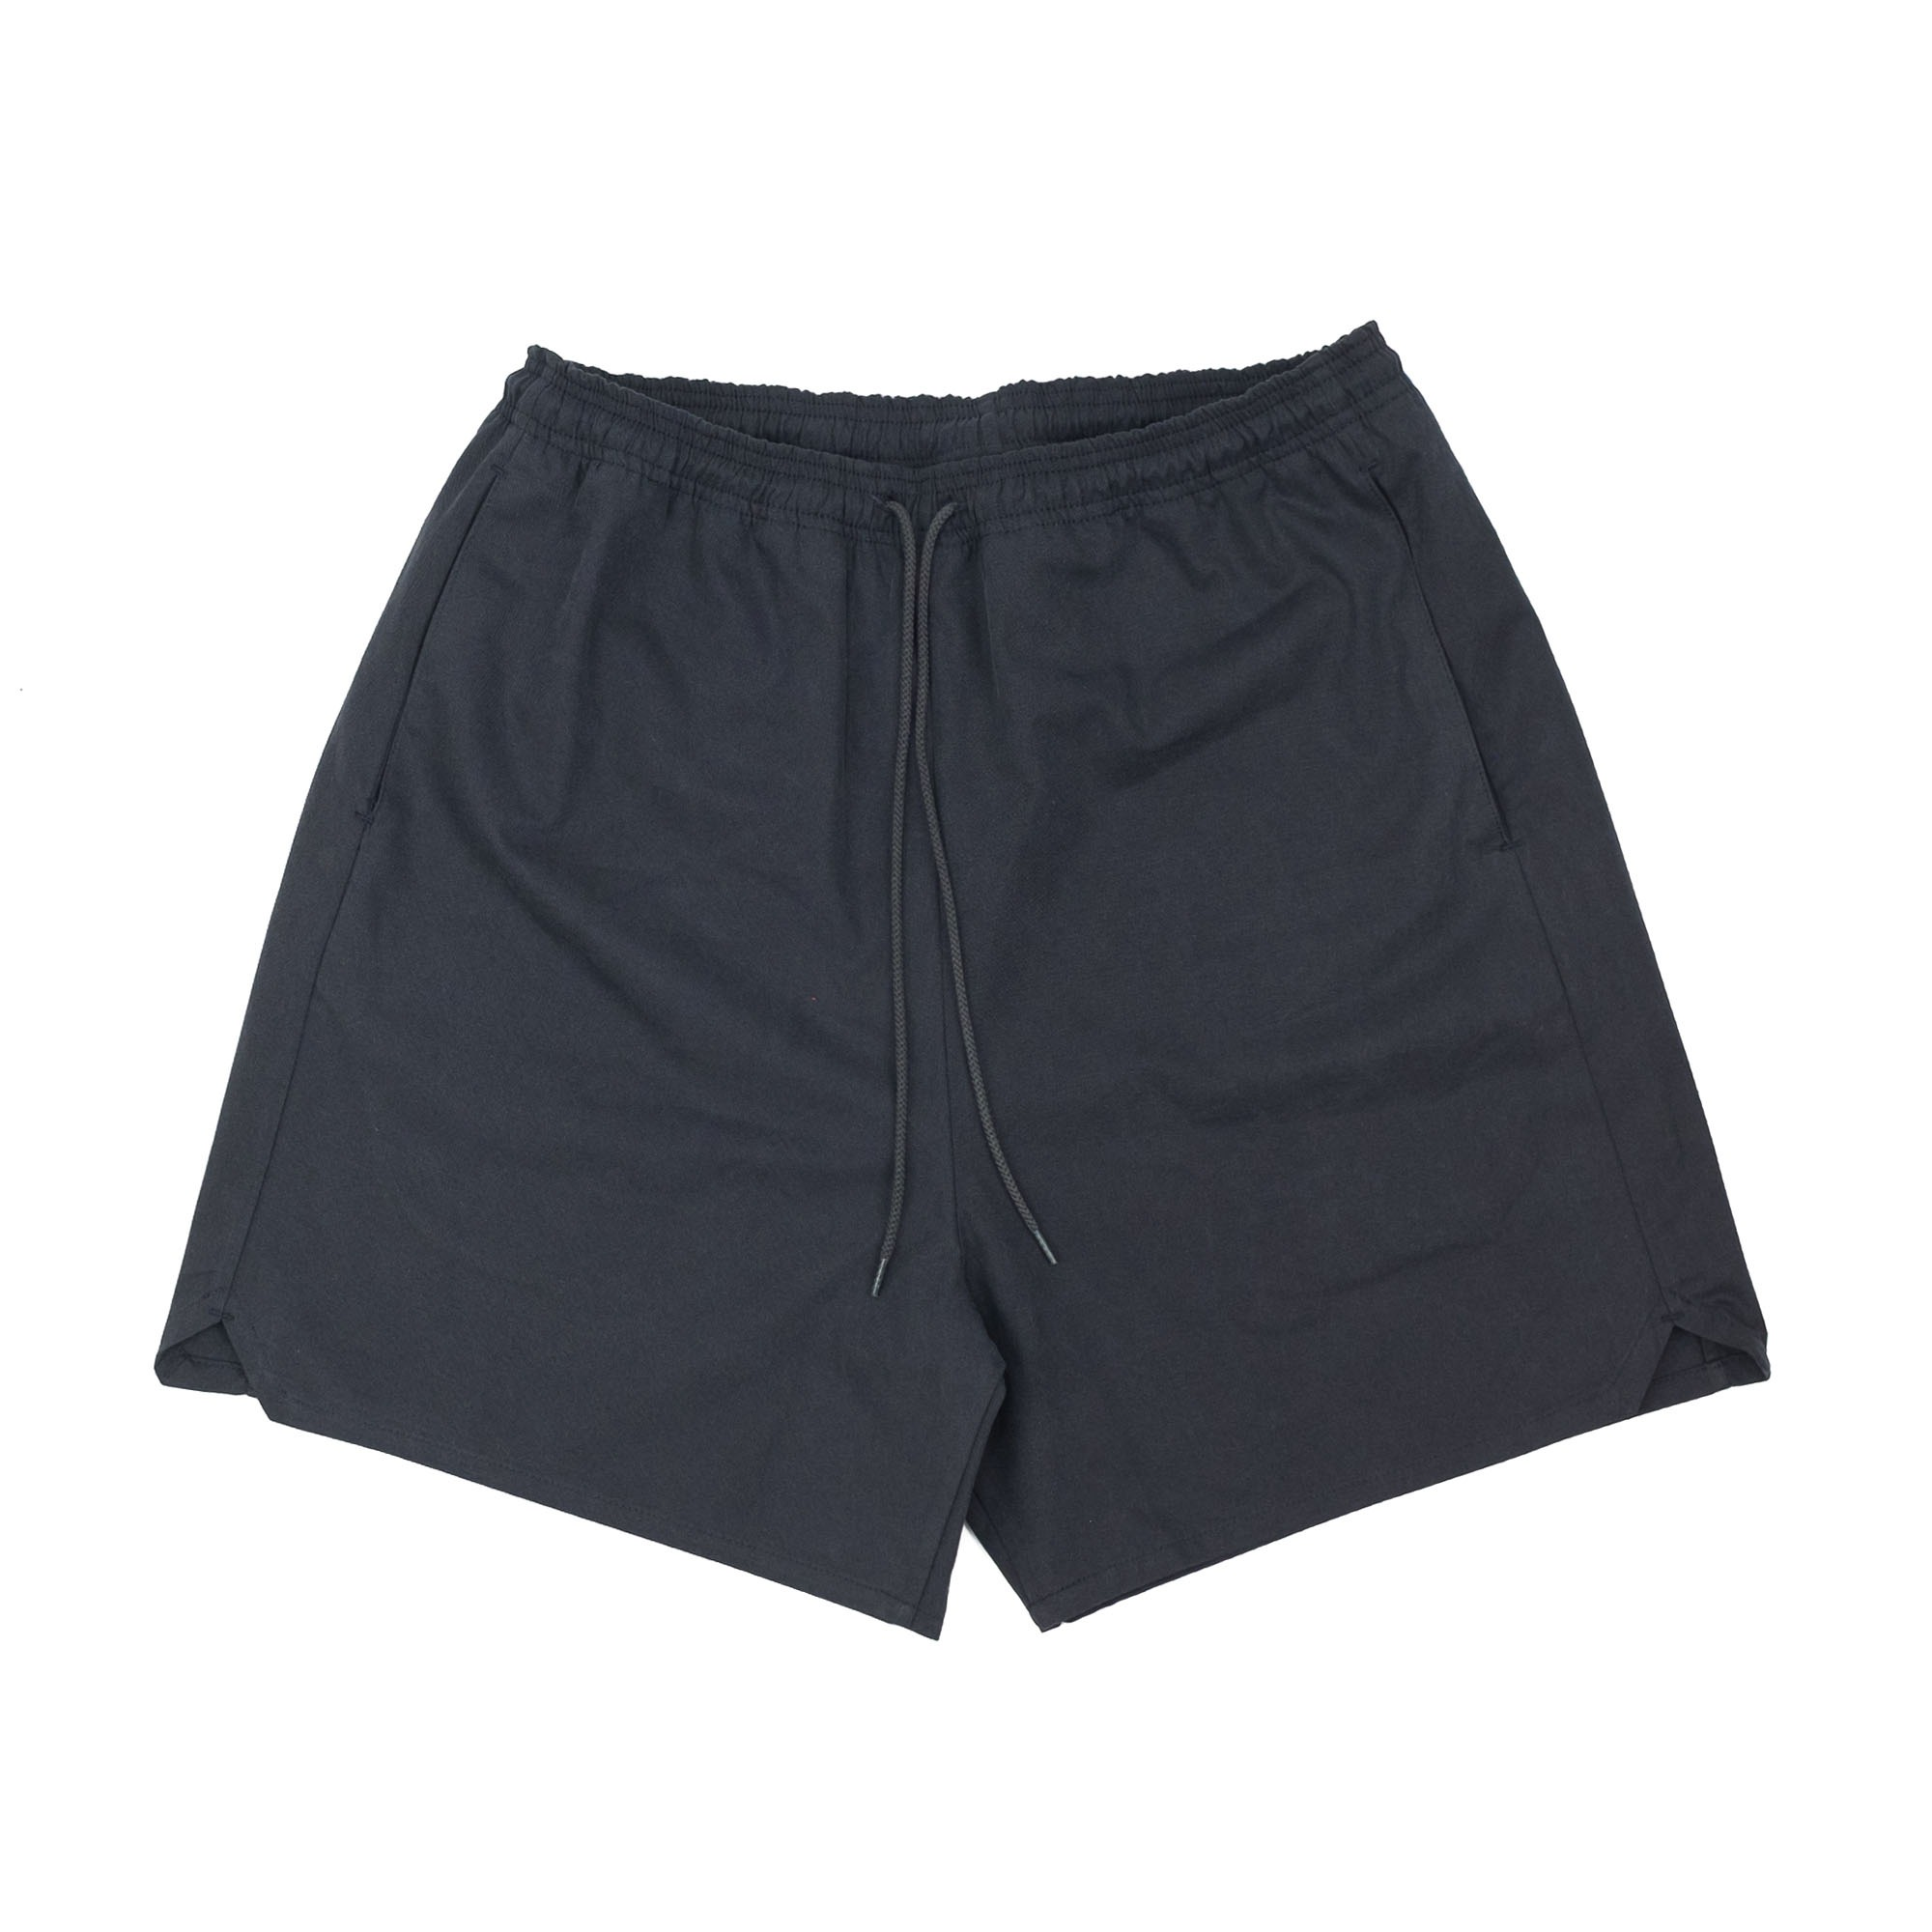 Kuro Sulfur Dyed NIDOM Training Shorts - Black